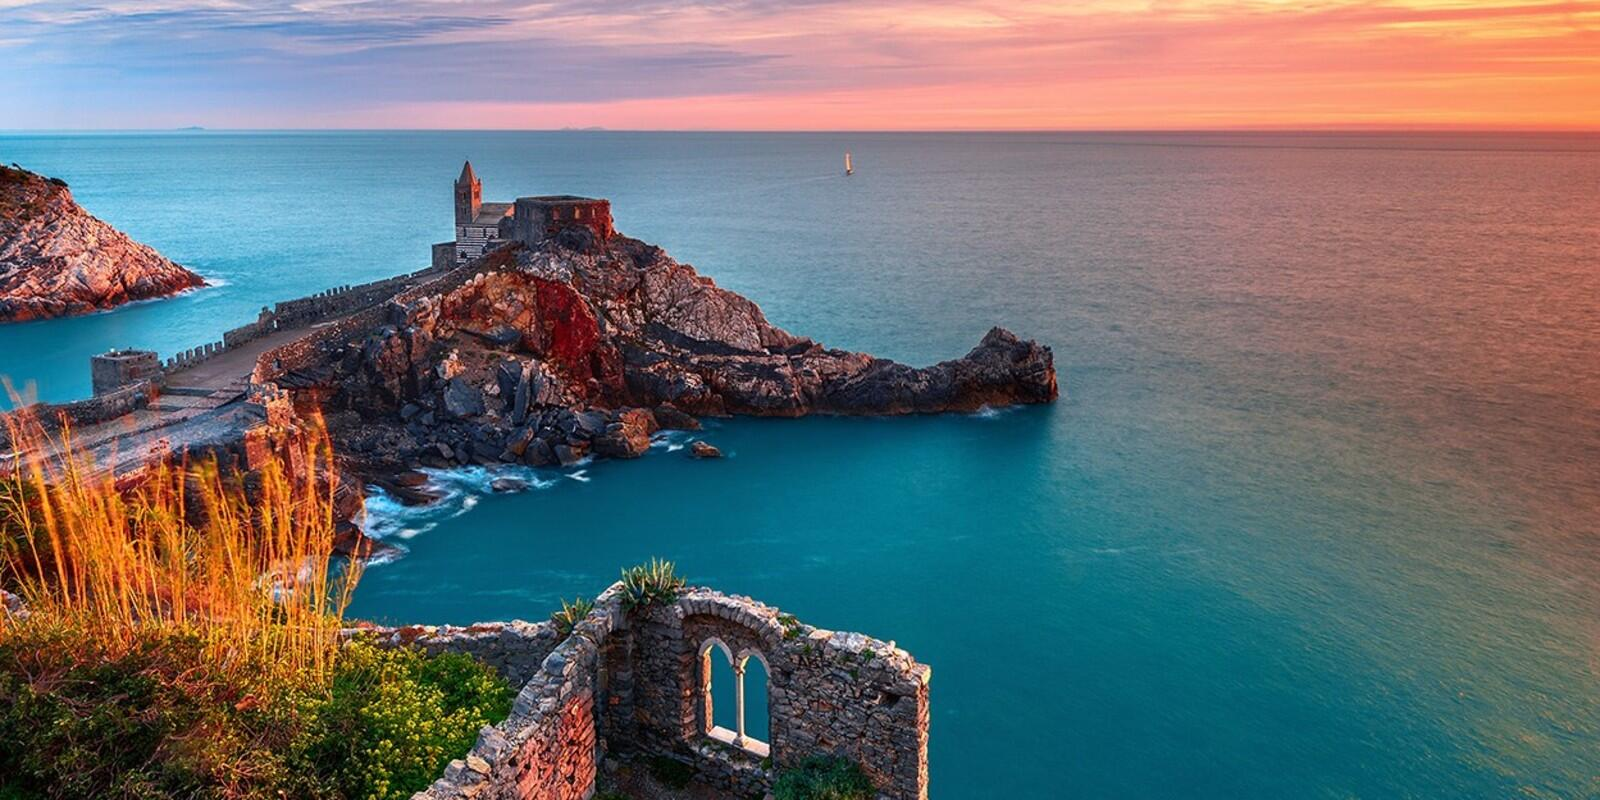 Sailing and relaxation in the Gulf of poets between Porto Venere, Palmaria and the bay under the castle of Lerici